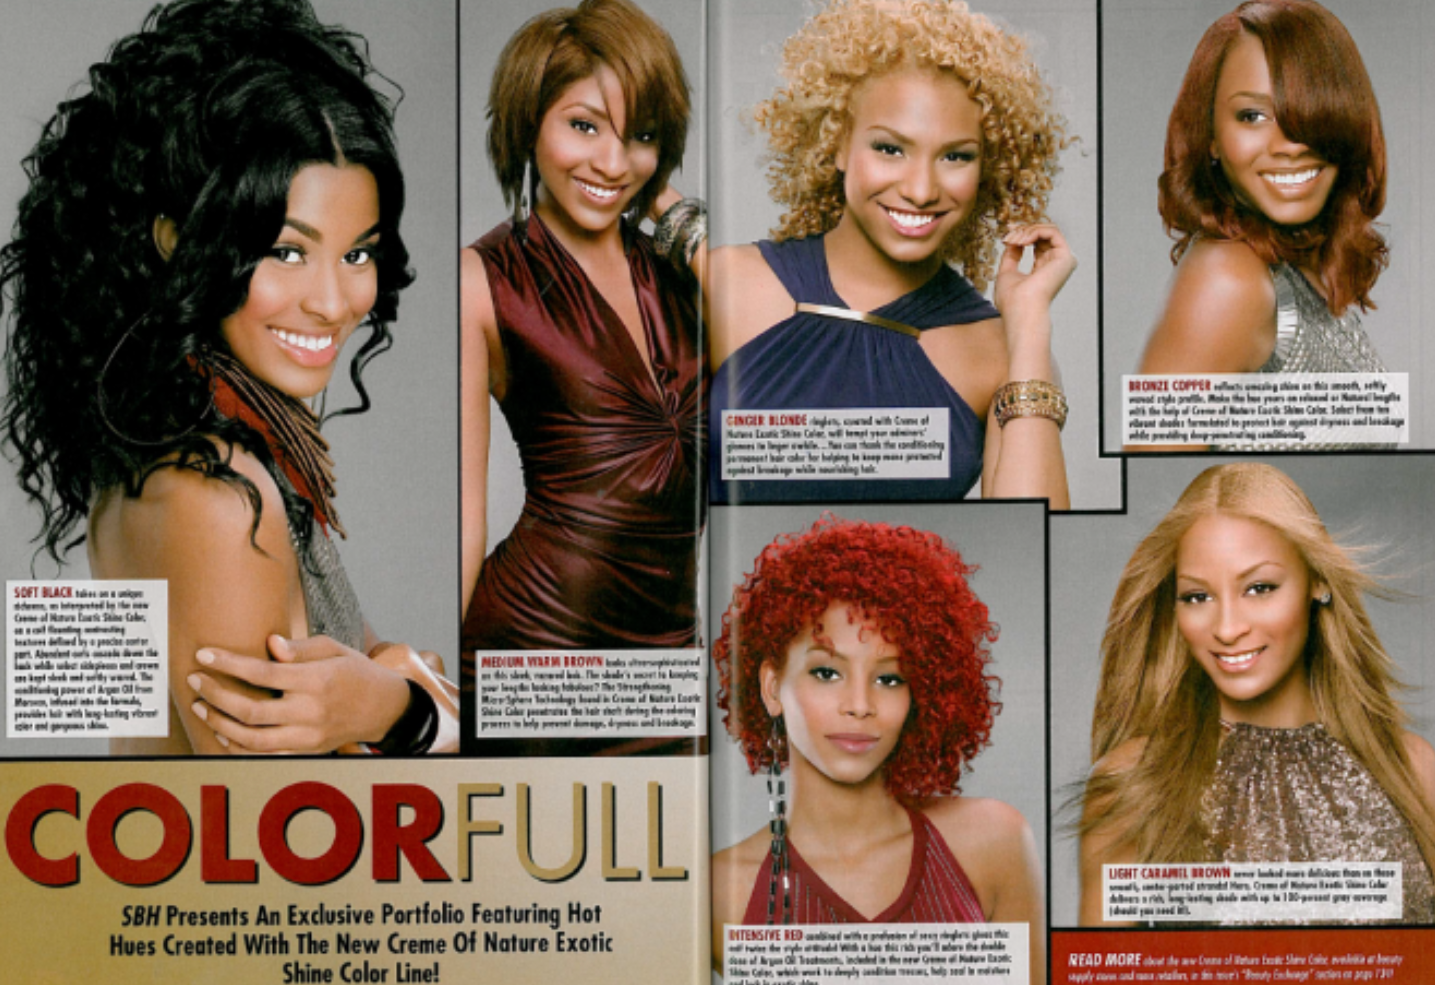 Tierra Benton met Pantene Campaign co star, Demi Grace's sister, Deborah Ayorinde (top right) in 2010 for a hair campaign with Creme of Nature.